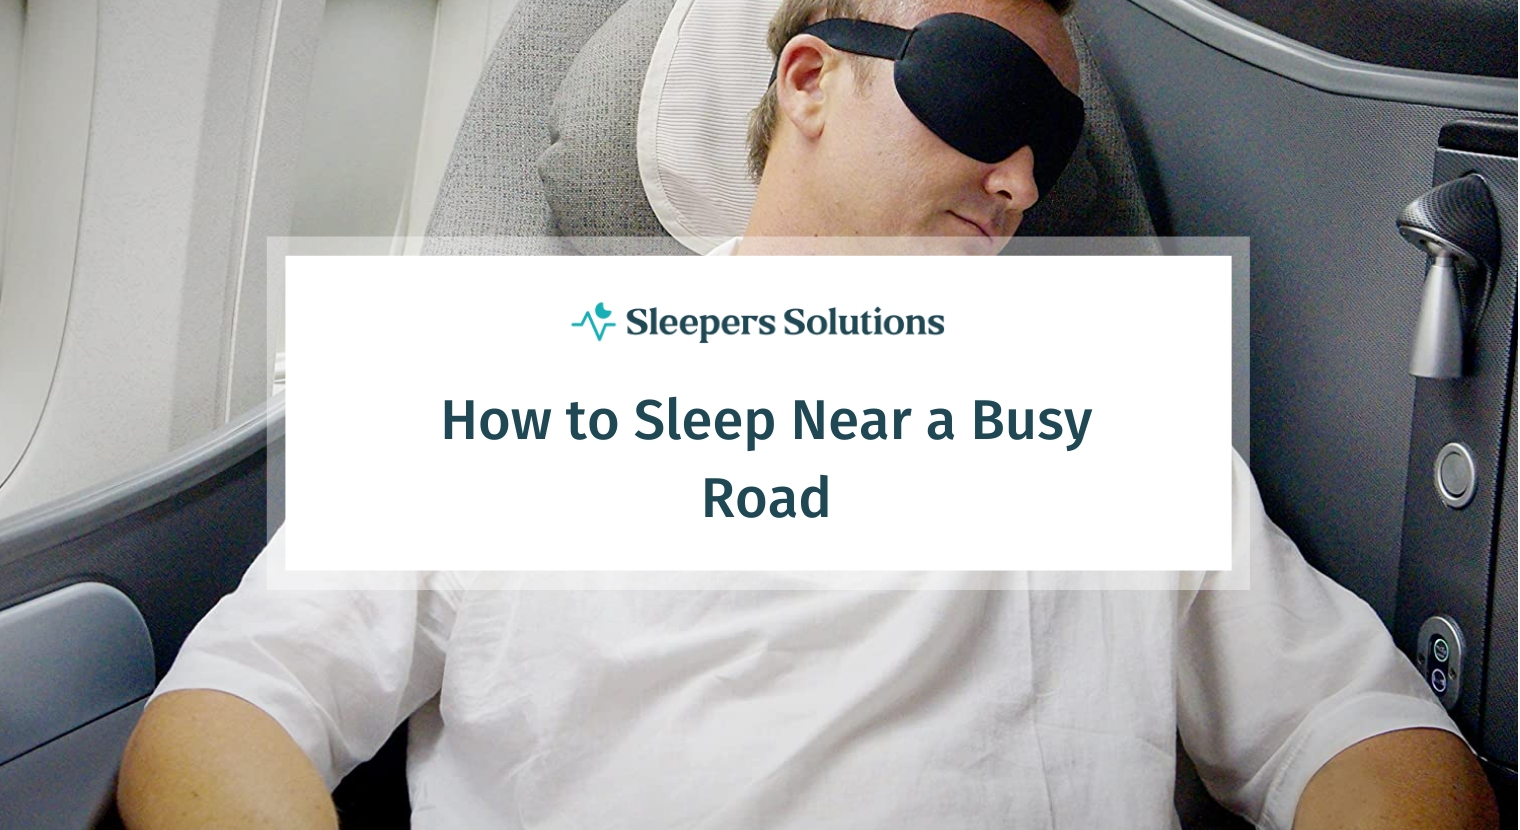 How to Sleep Near a Busy Road